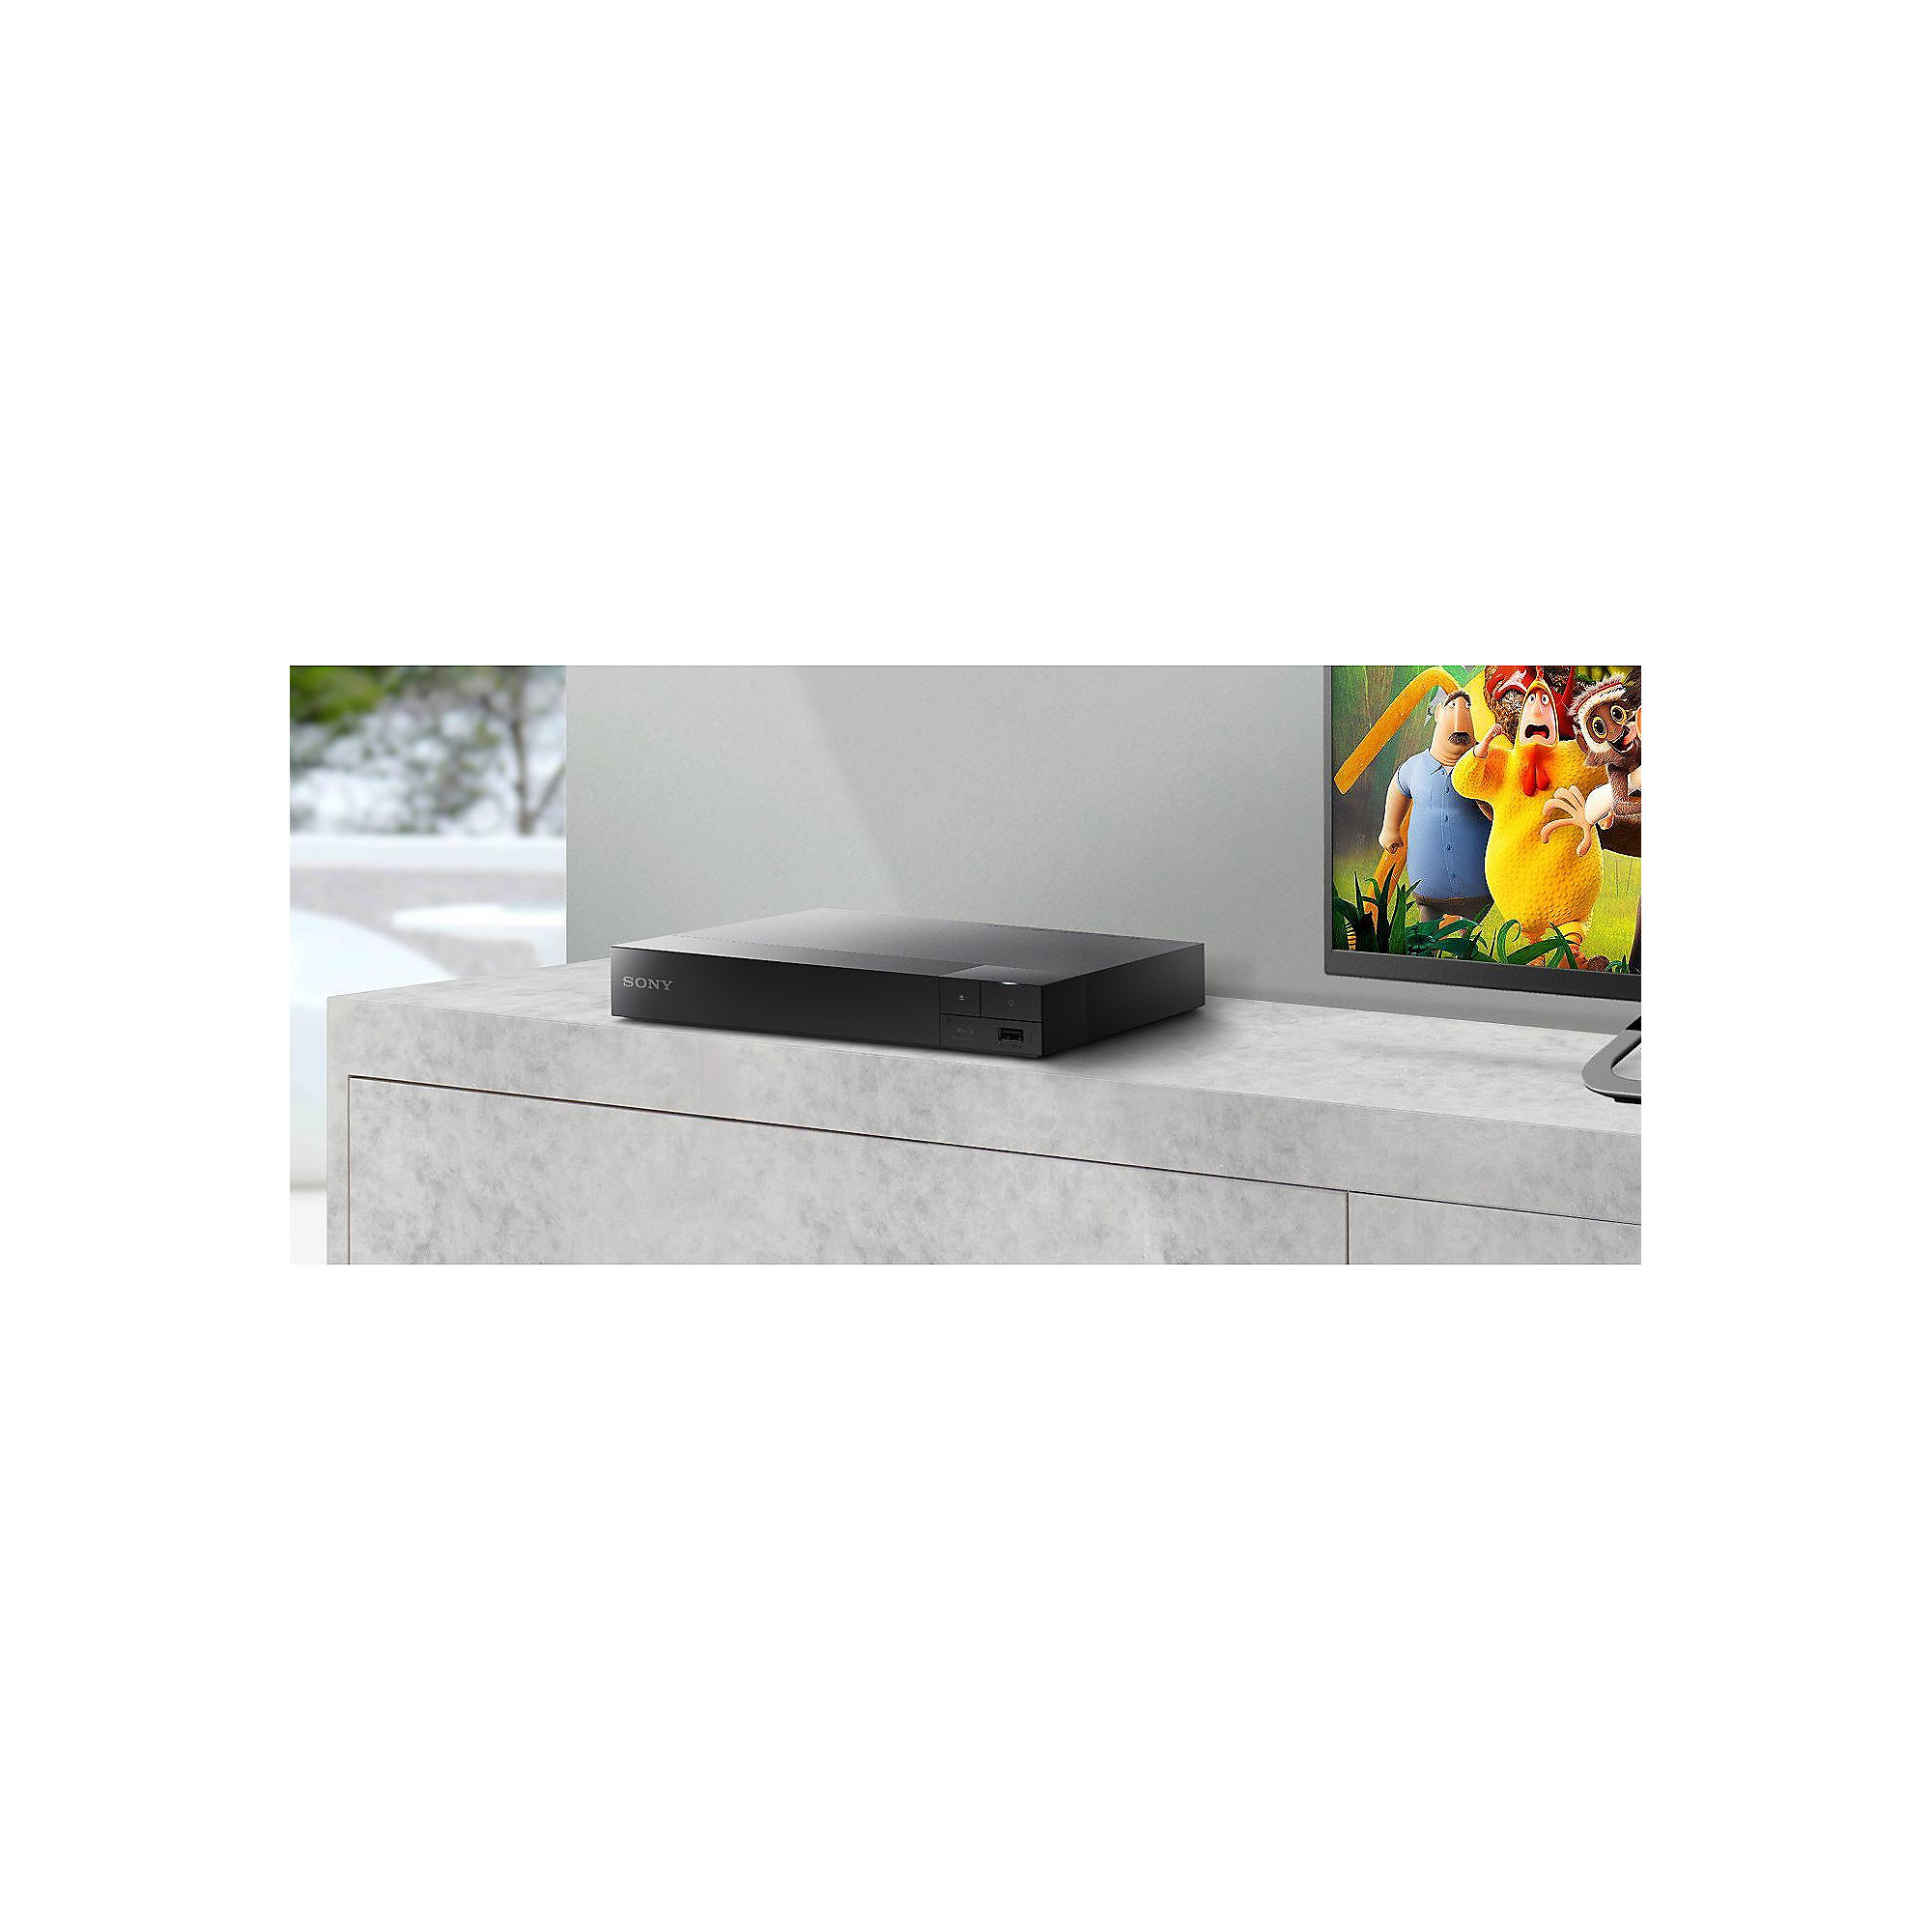 Sony BDP-S3700 Blu-ray-Player (Super WiFi, USB, Screen Mirroring) schwarz